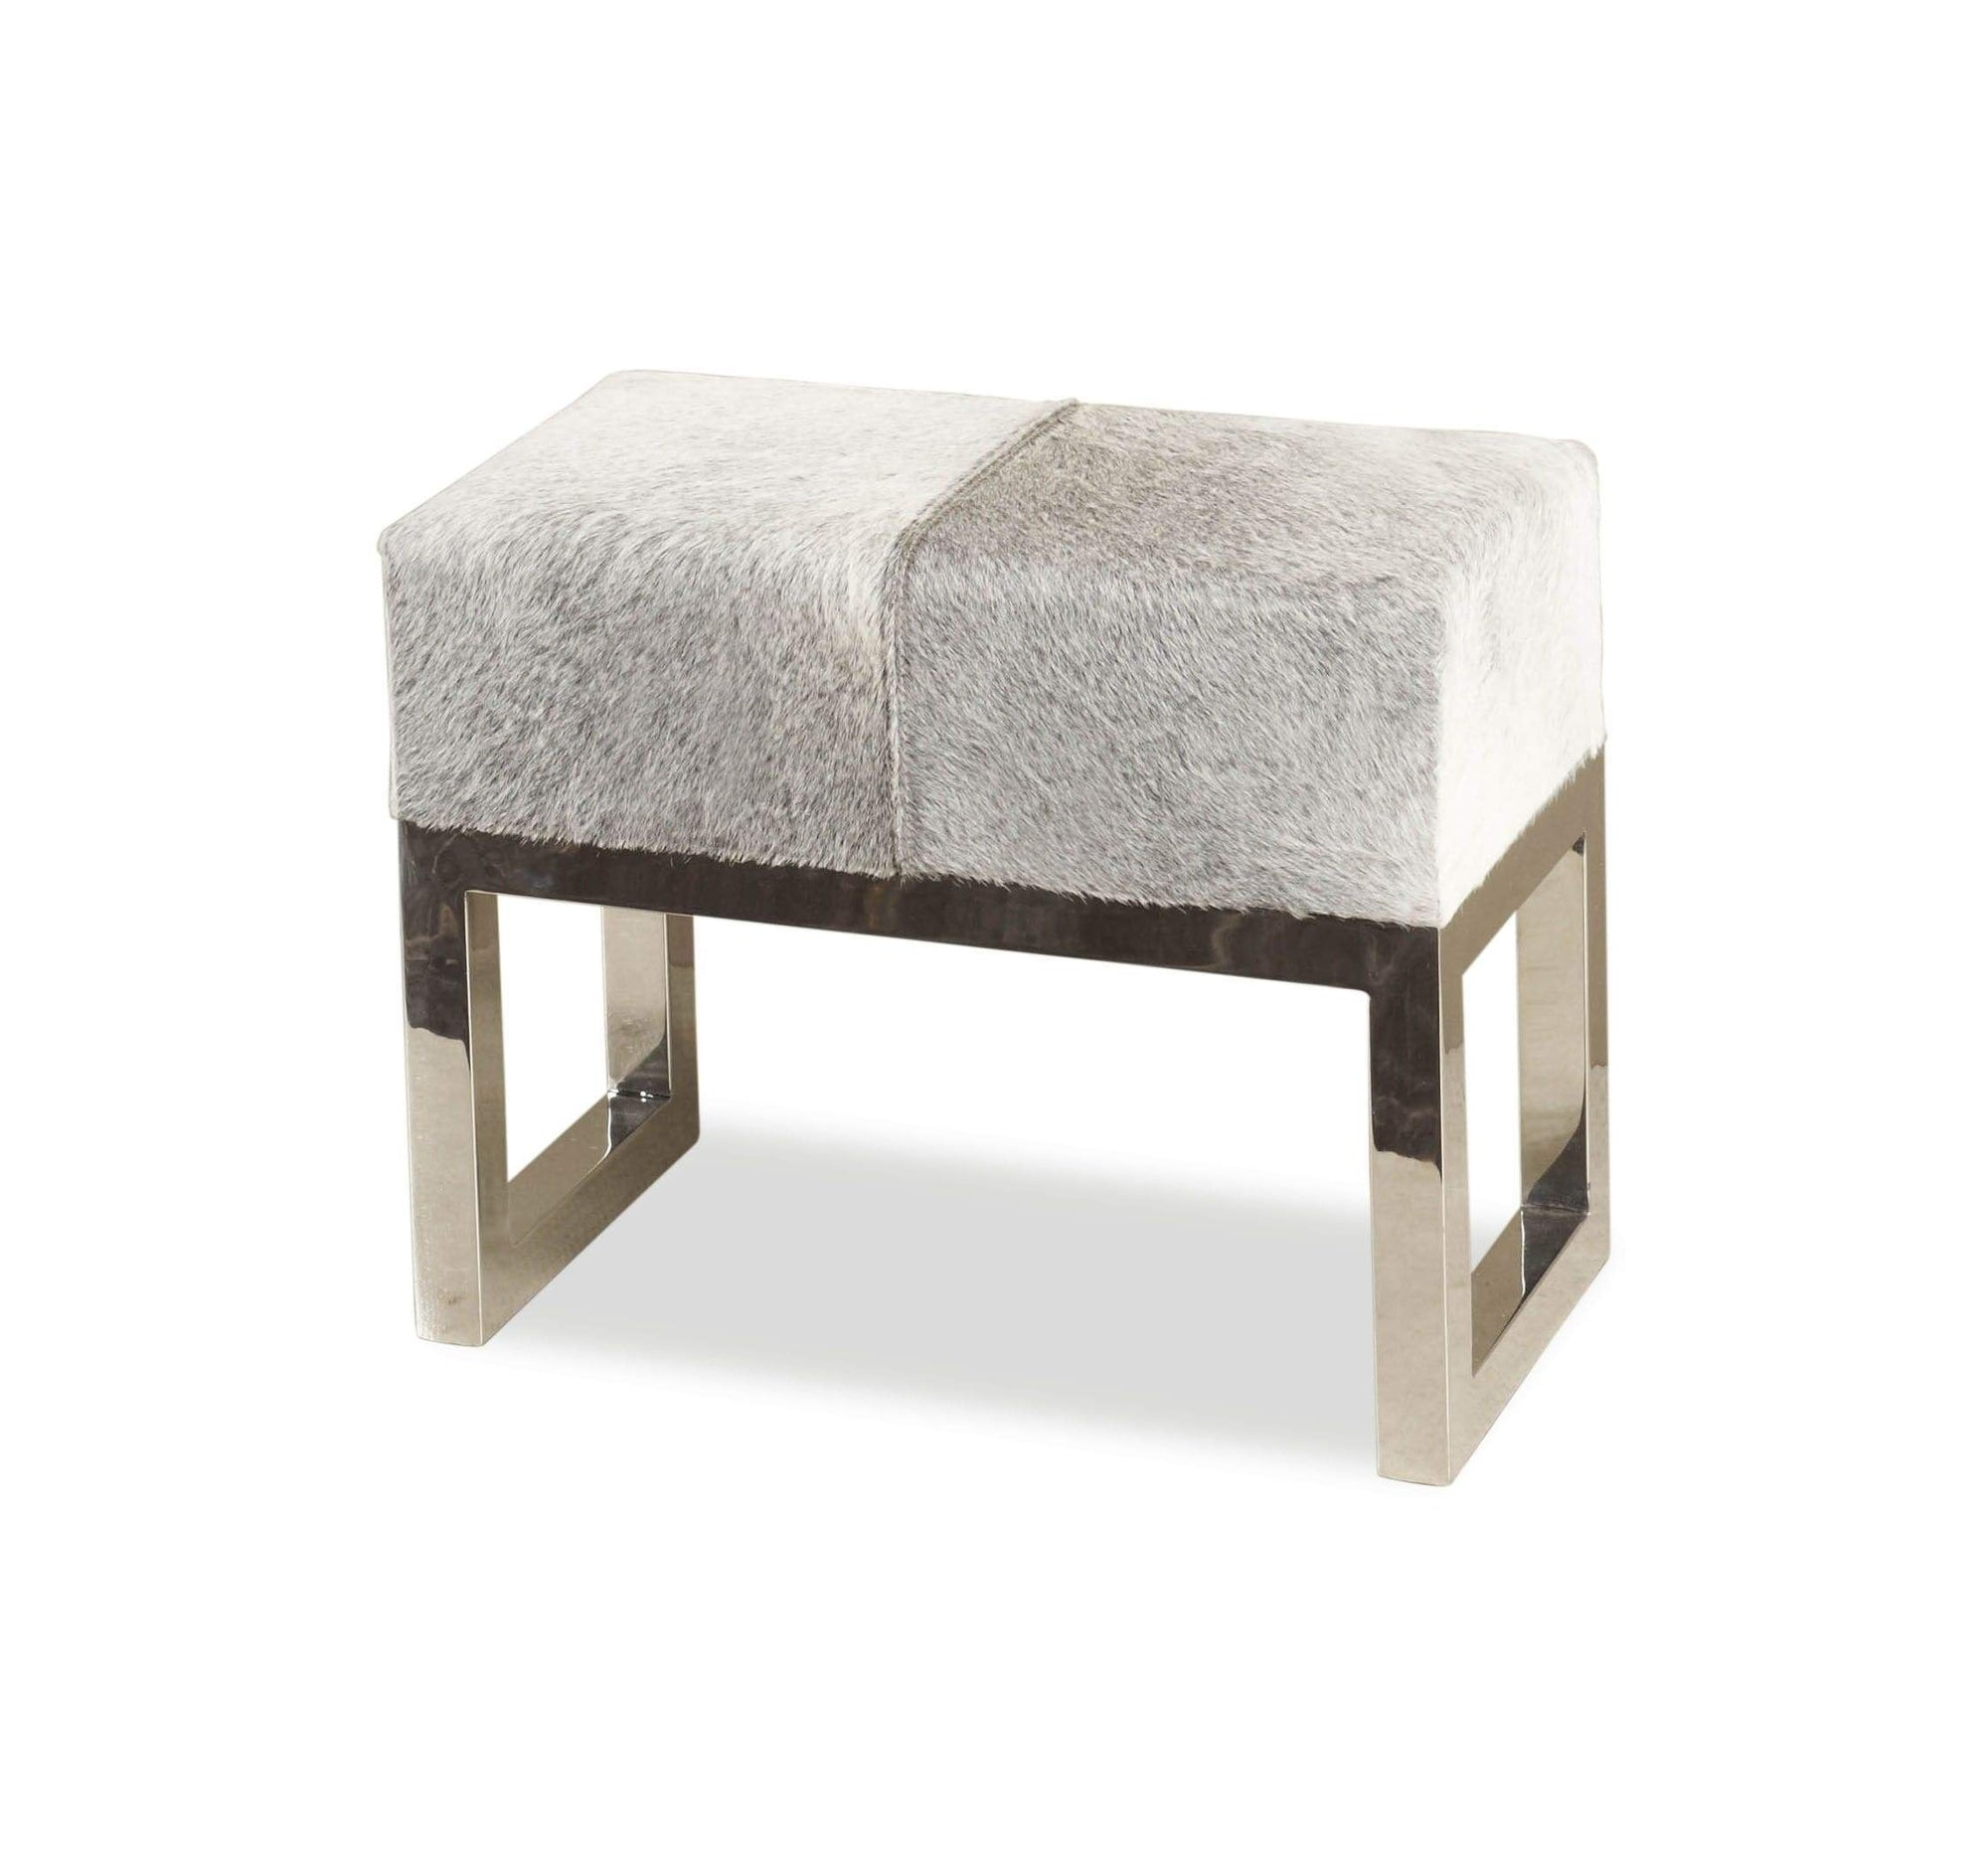 Interlude Home Interlude Home Moro Hide Stool 145035